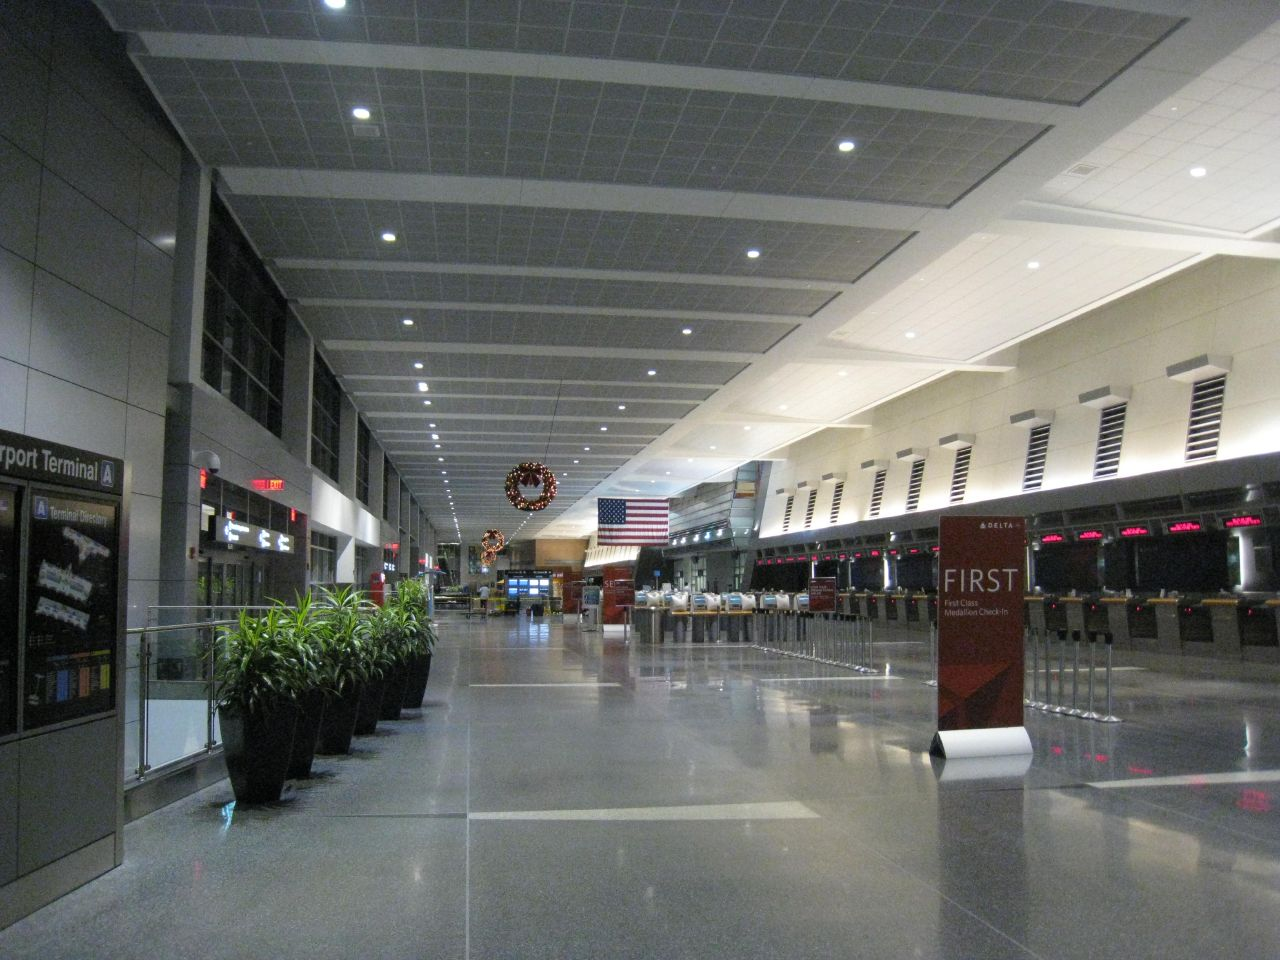 Ticketing hall of Terminal A at night